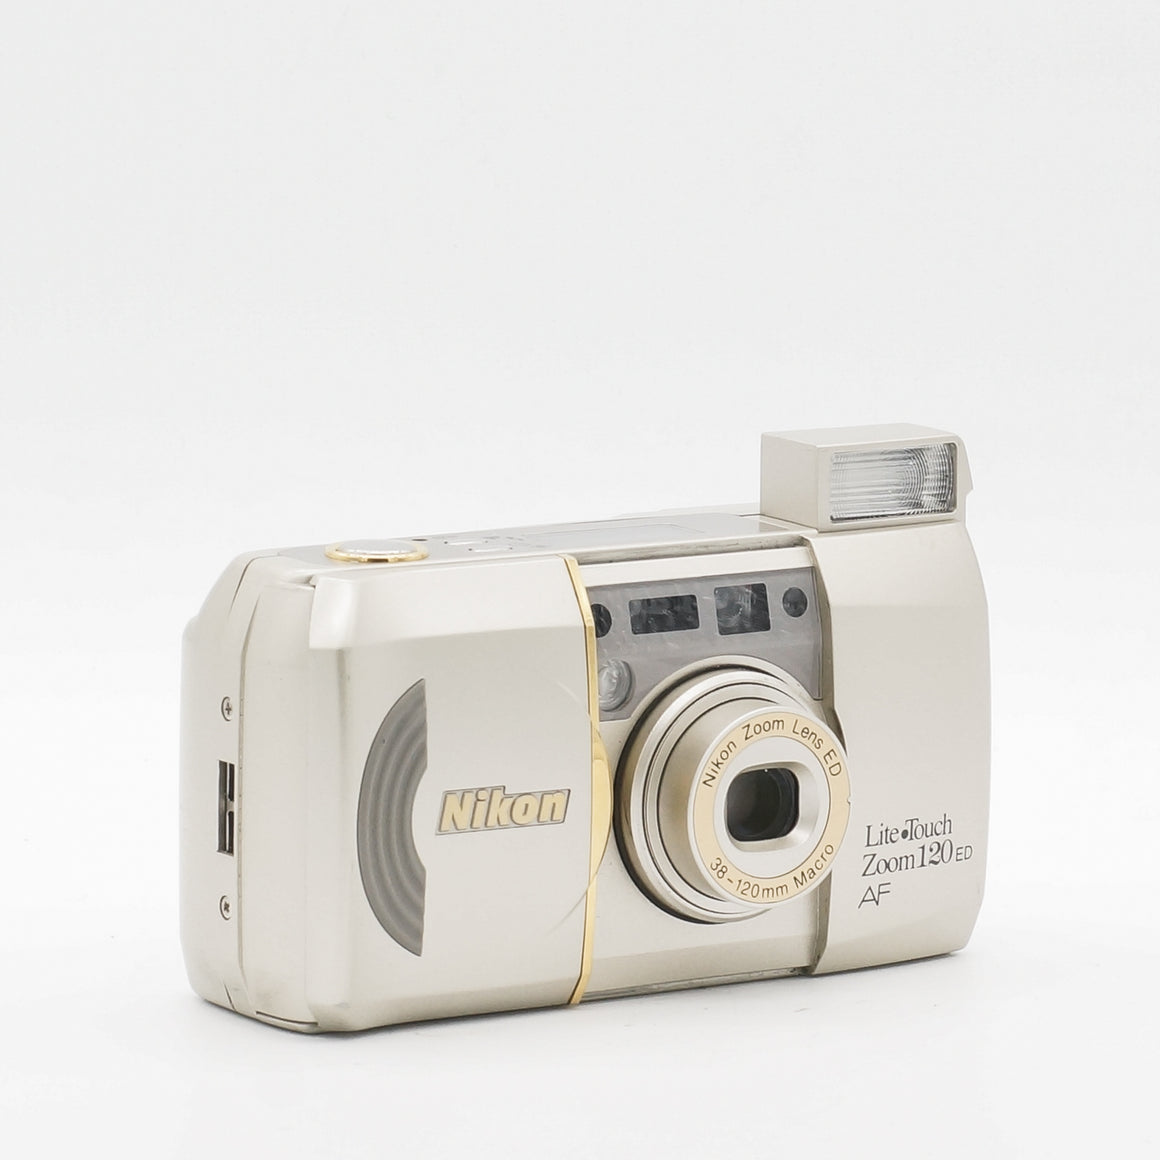 Nikon Lite Touch Zoom 120ED - 35mm Point and Shoot Camera